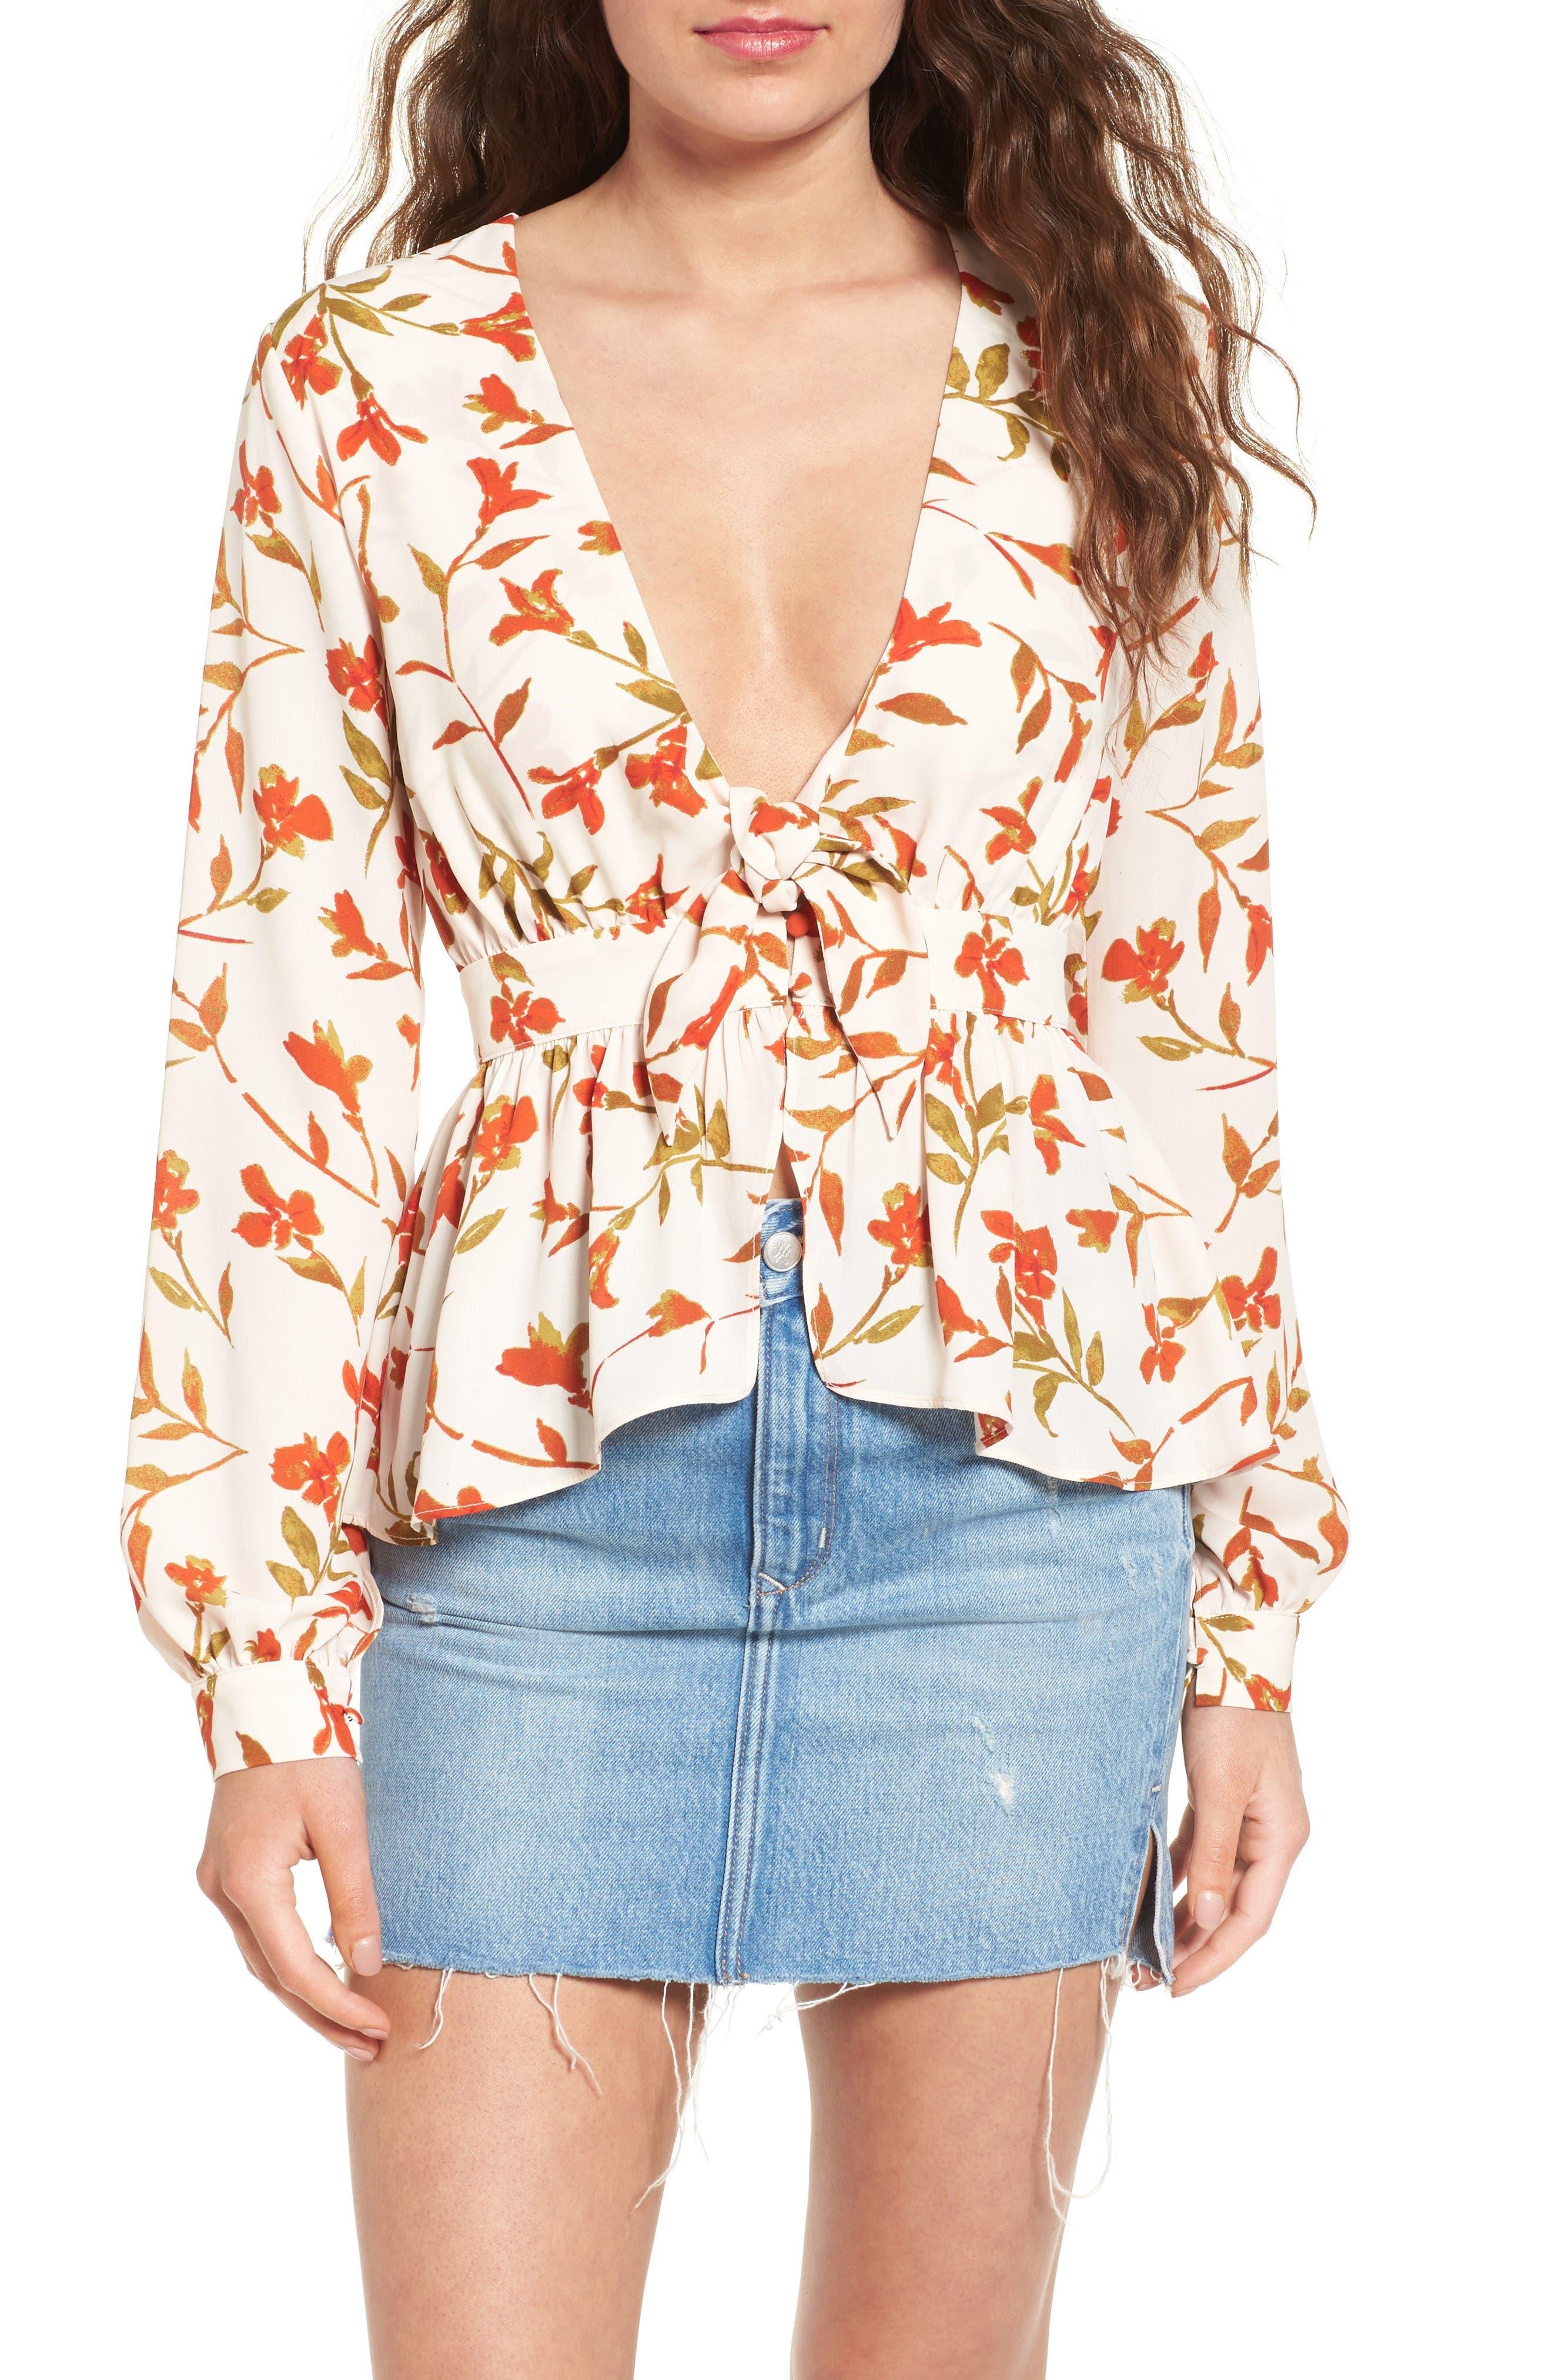 Main Image - Lovers & Friends Hermosa Floral Print Blouse